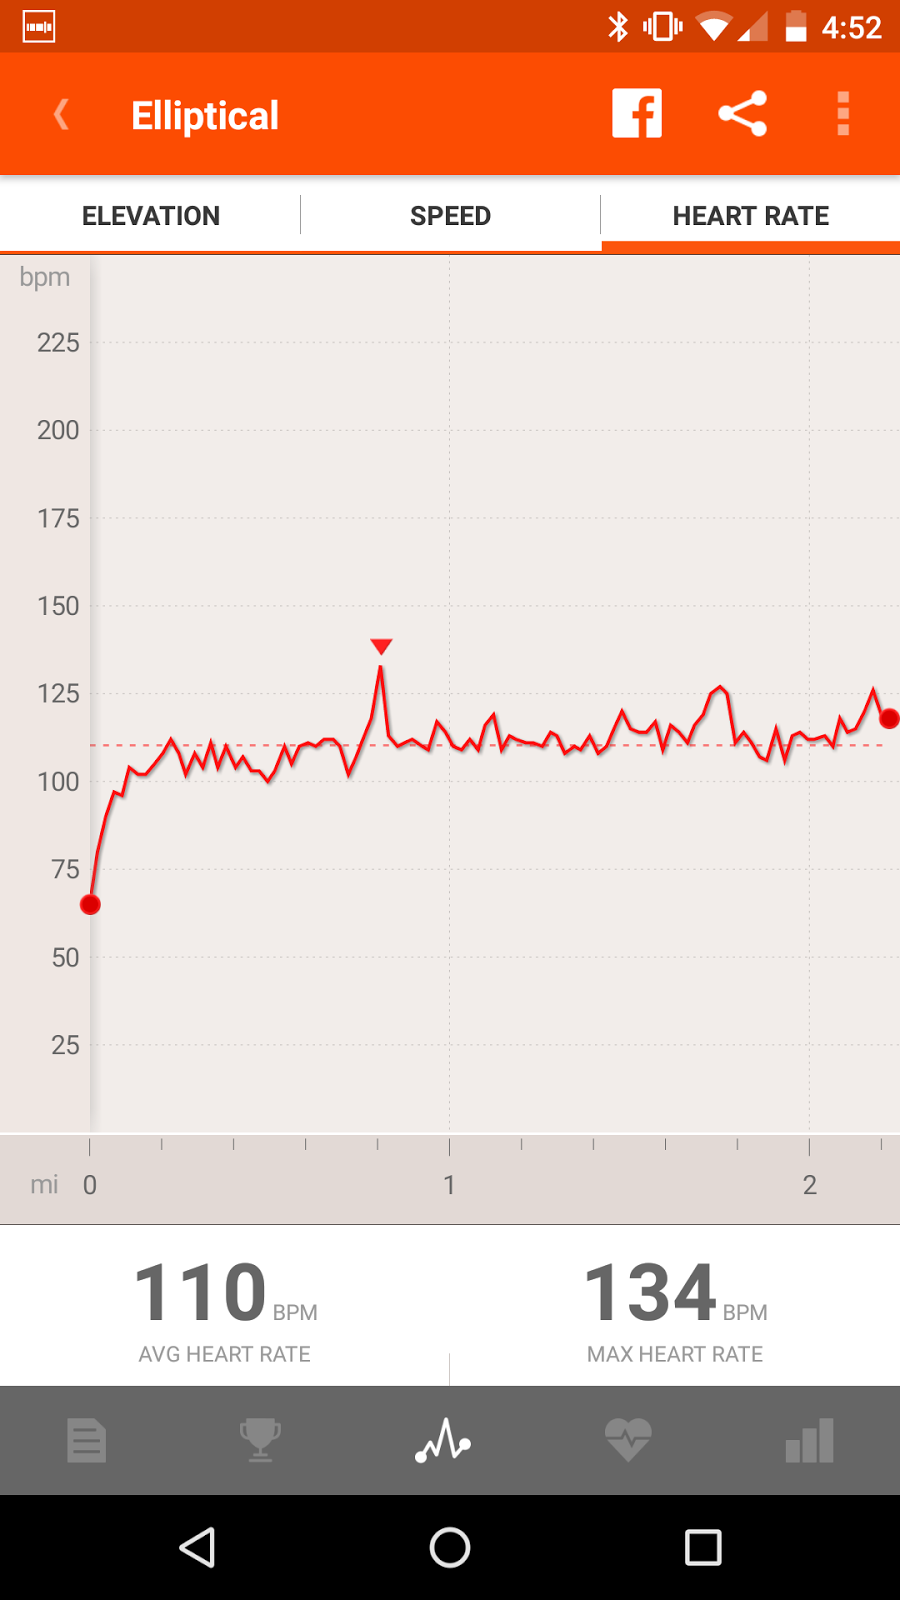 Midpack gear november 2015 the strava heart rate chart from the elliptical nvjuhfo Images